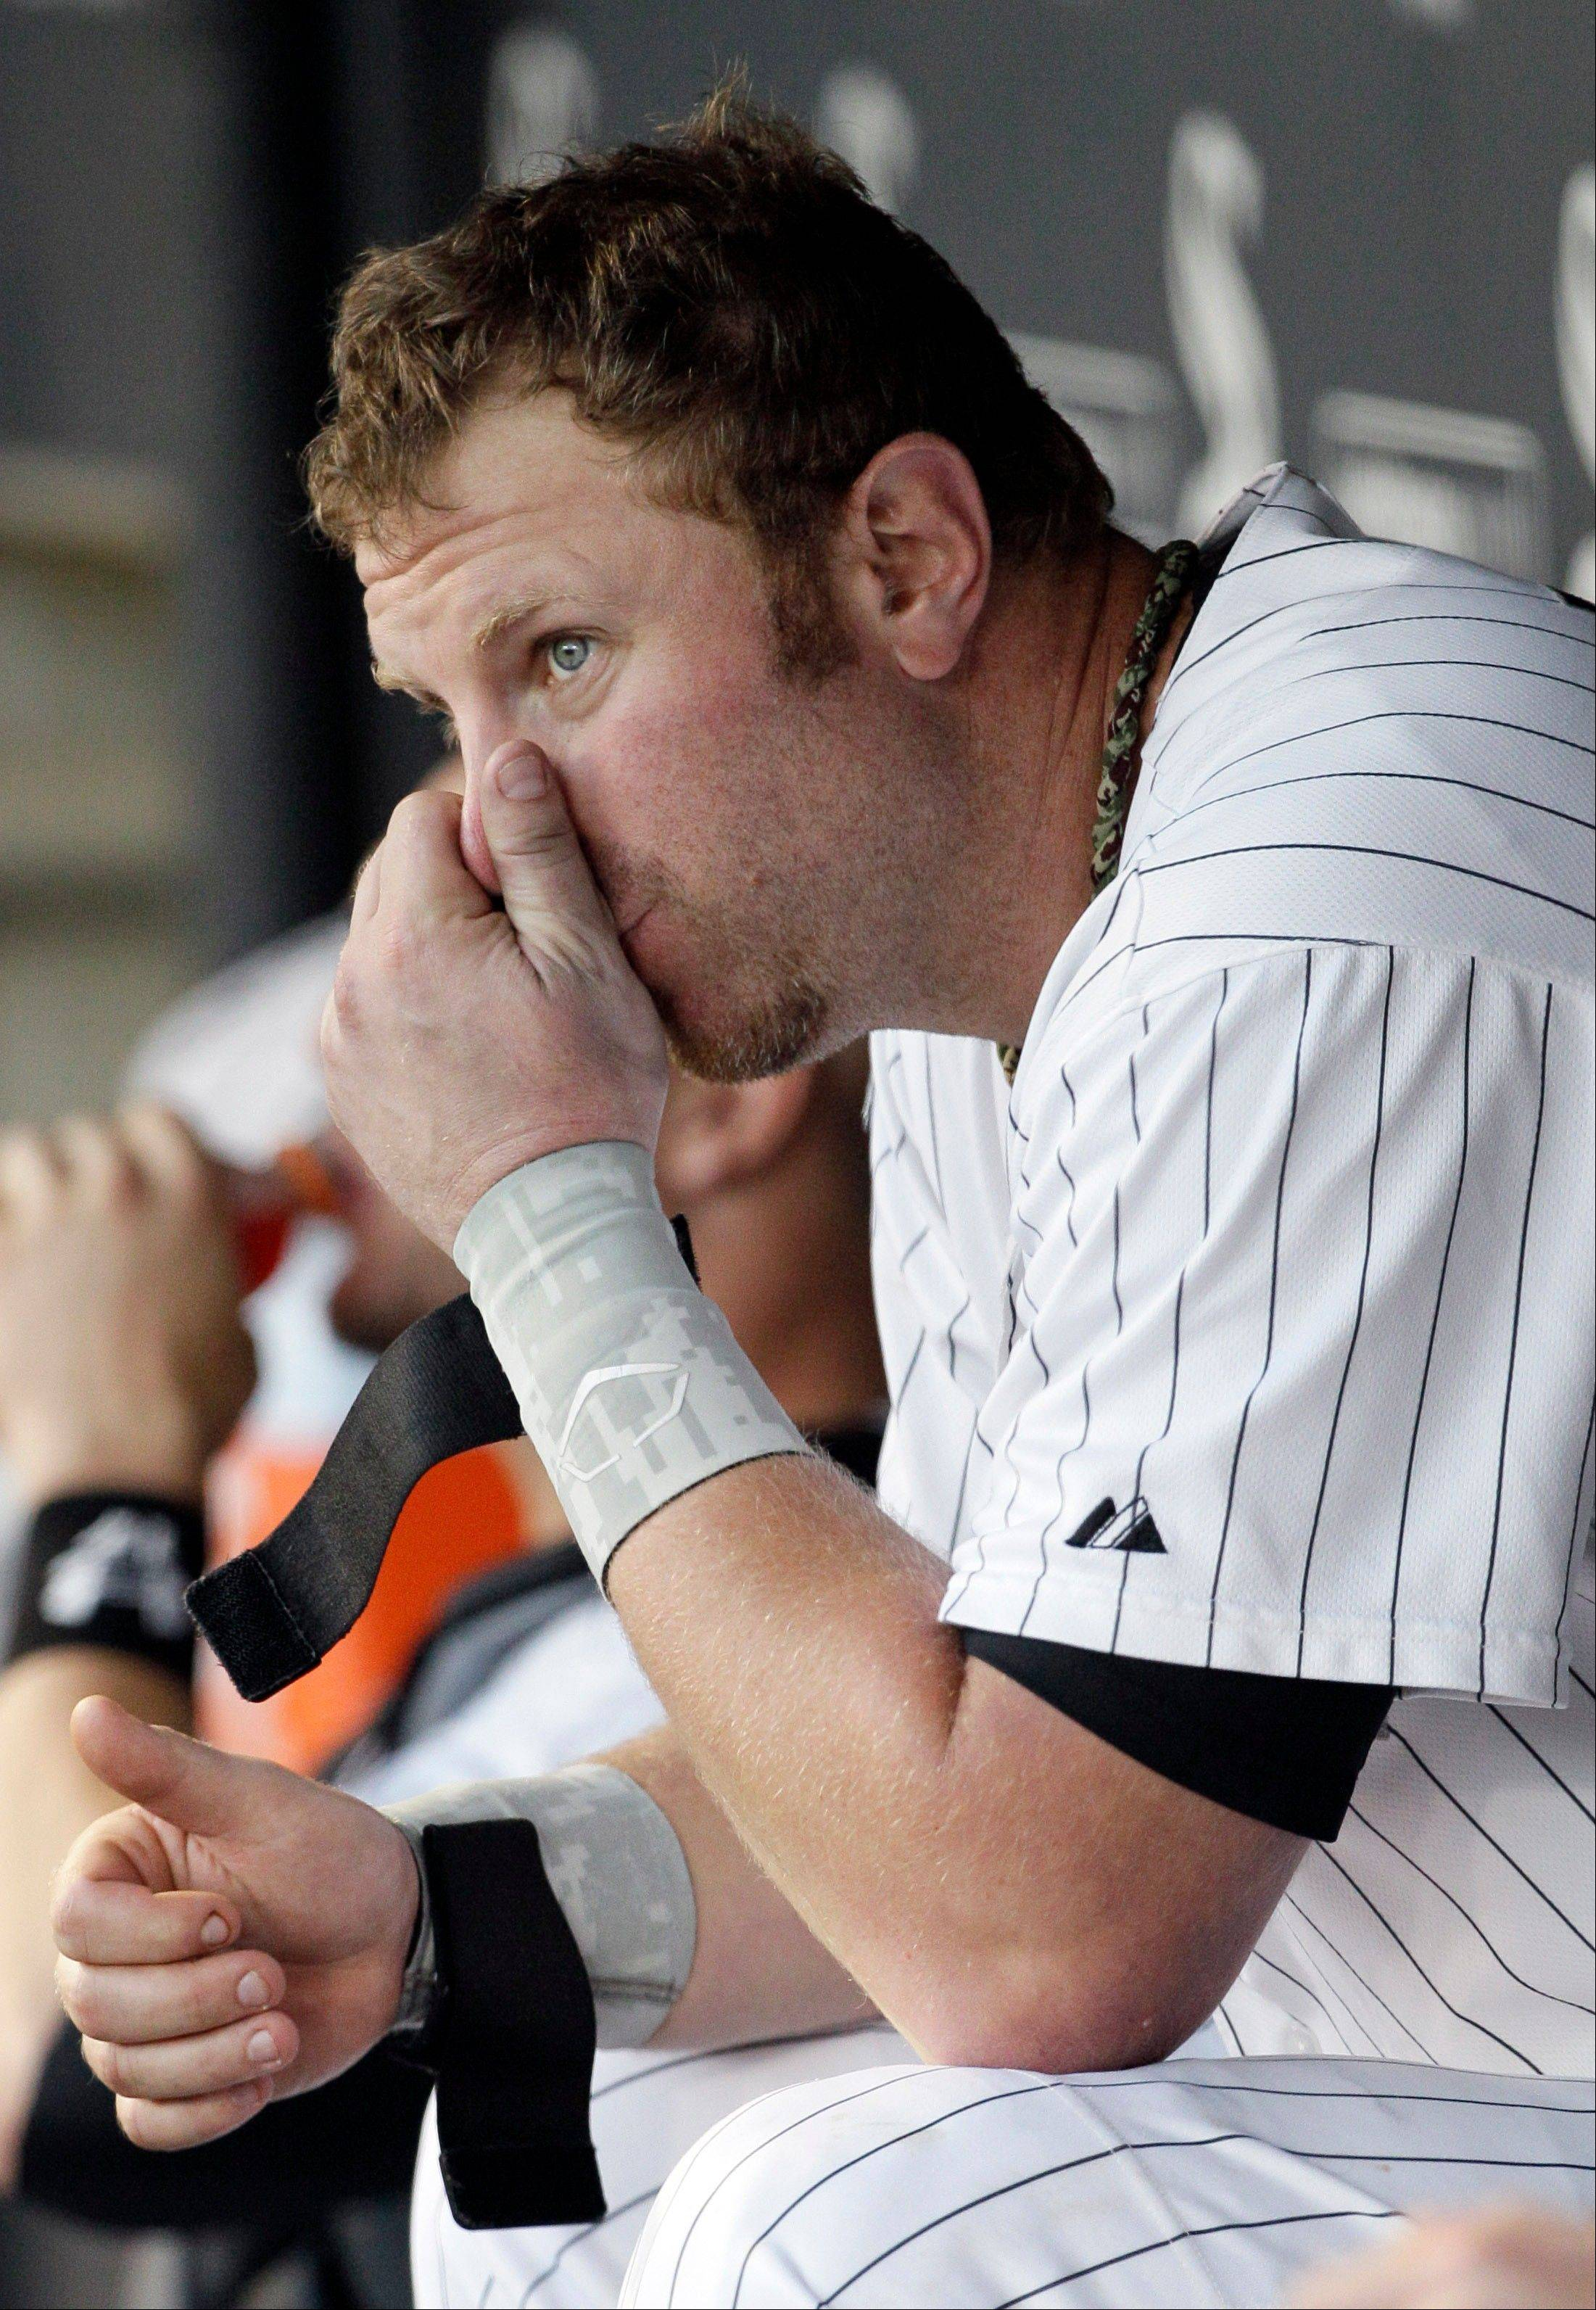 Adam Dunn hit just .204 and finished with an OPS of .800, the lowest ever for someone who hit 40-plus HRs in a season.